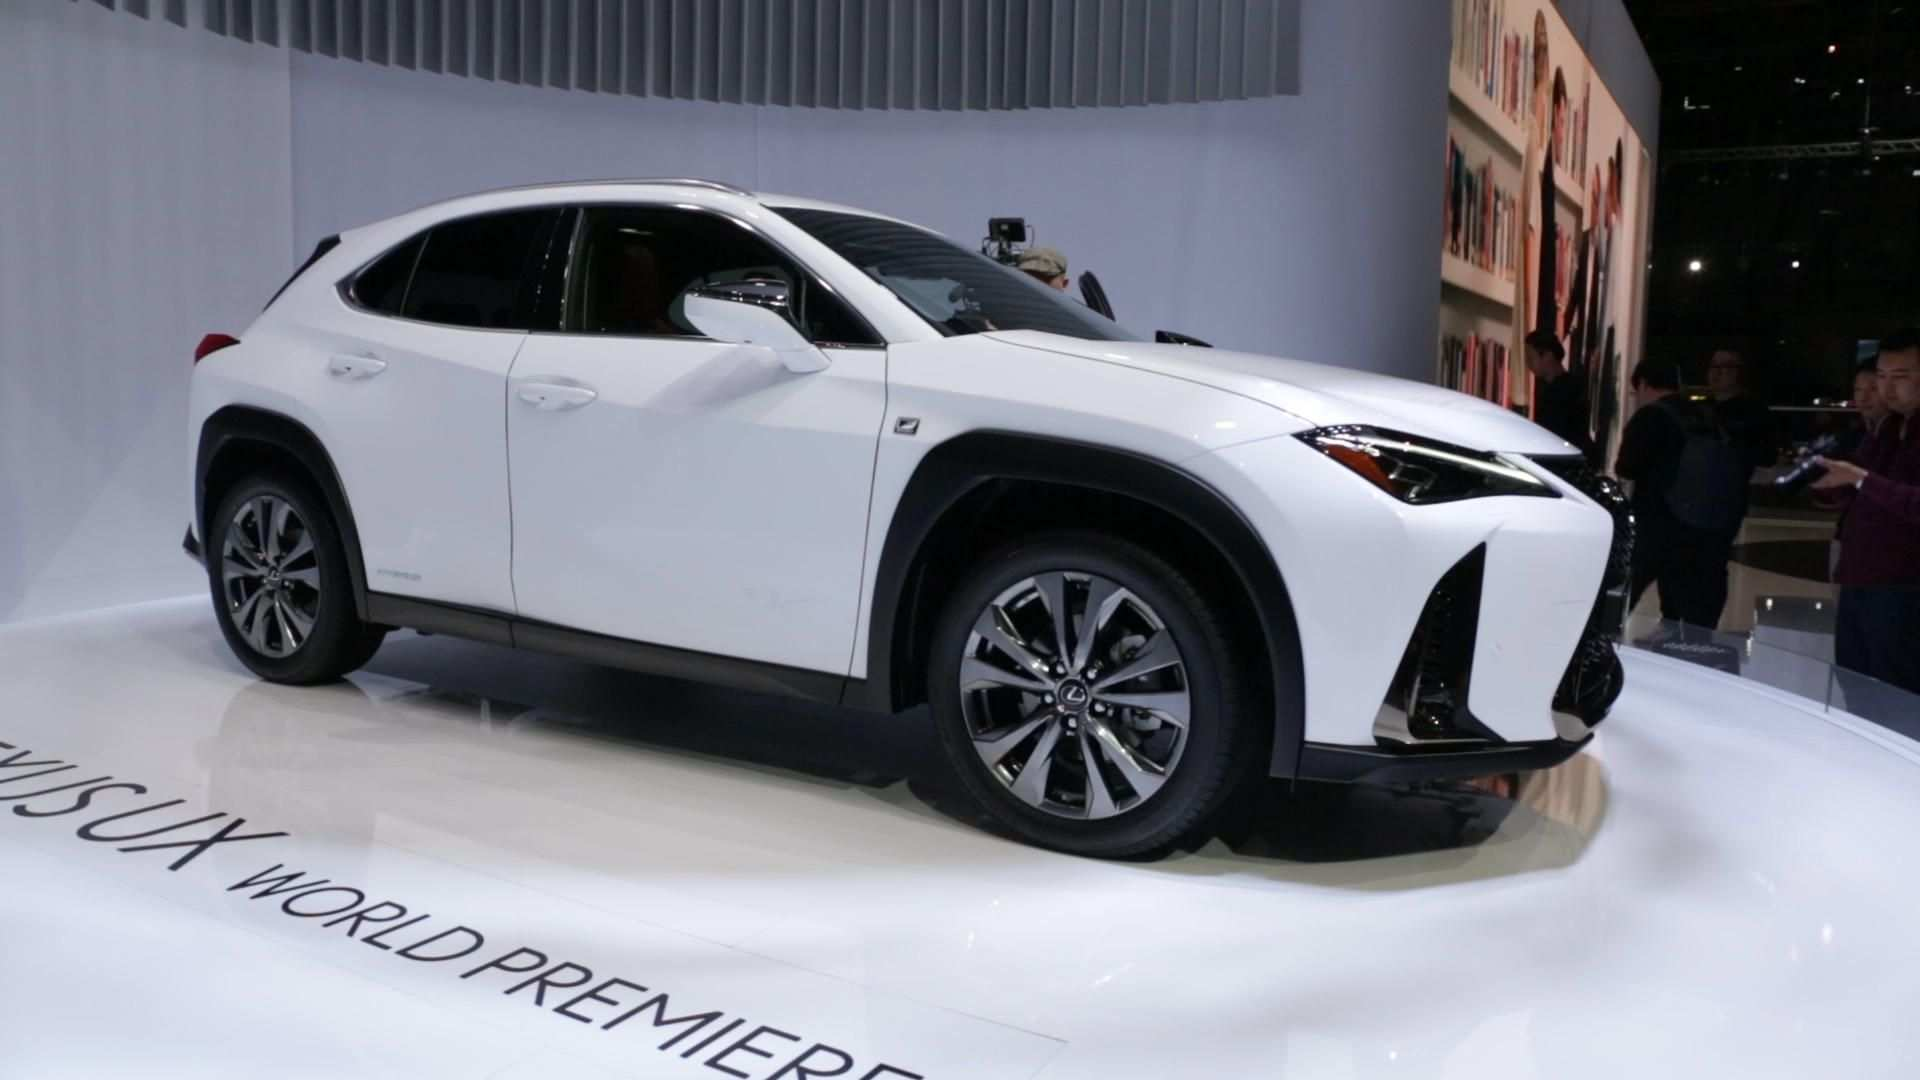 36 Best Review Lexus 2019 Ux Release Date Price and Review for Lexus 2019 Ux Release Date